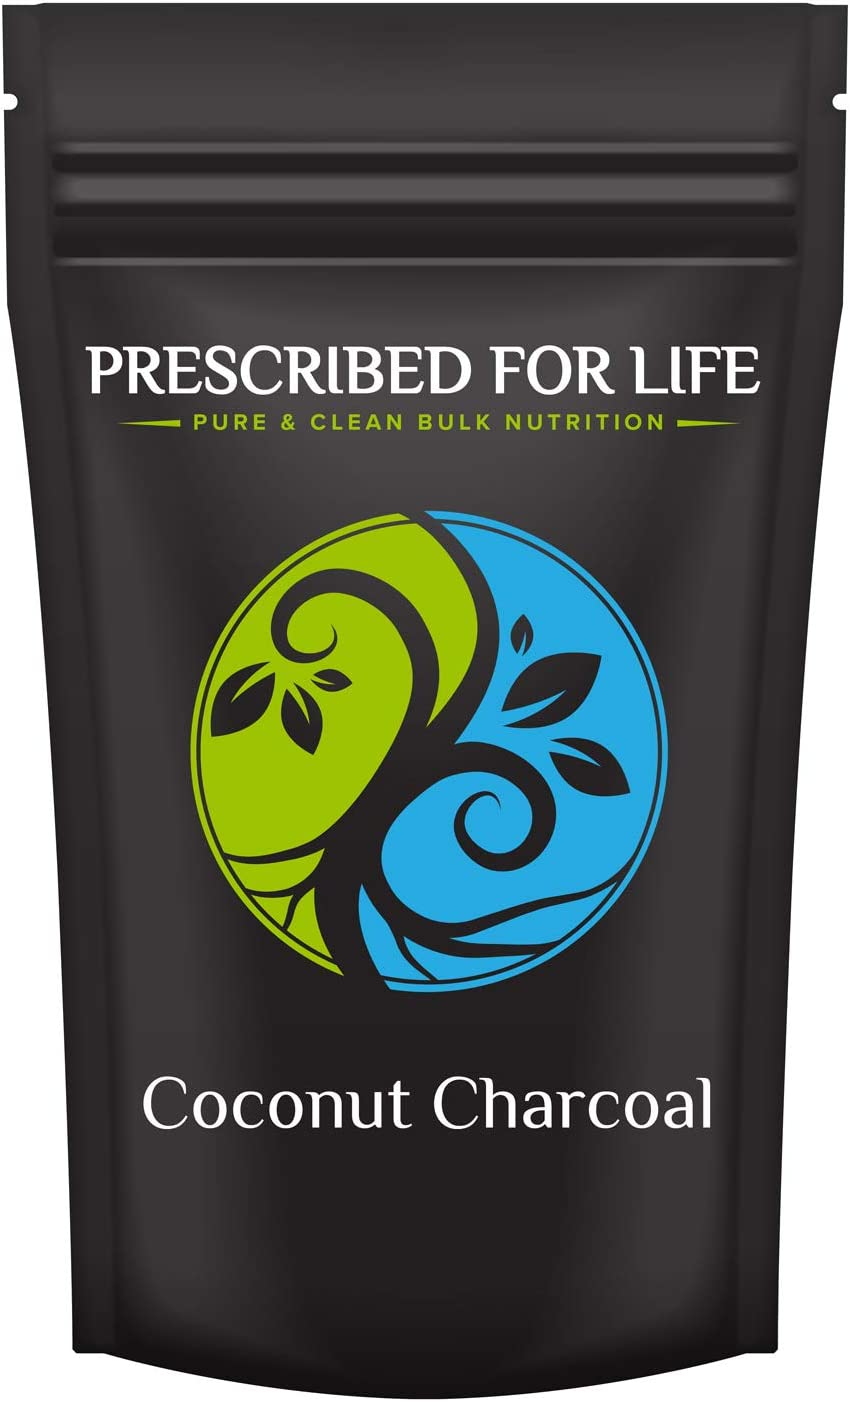 Prescribed for Life Coconut Charcoal - Coarse Granular Husk Activated Coconut Shell Charcoal - Food Grade (12/30 Mesh), 12 oz (340 g)